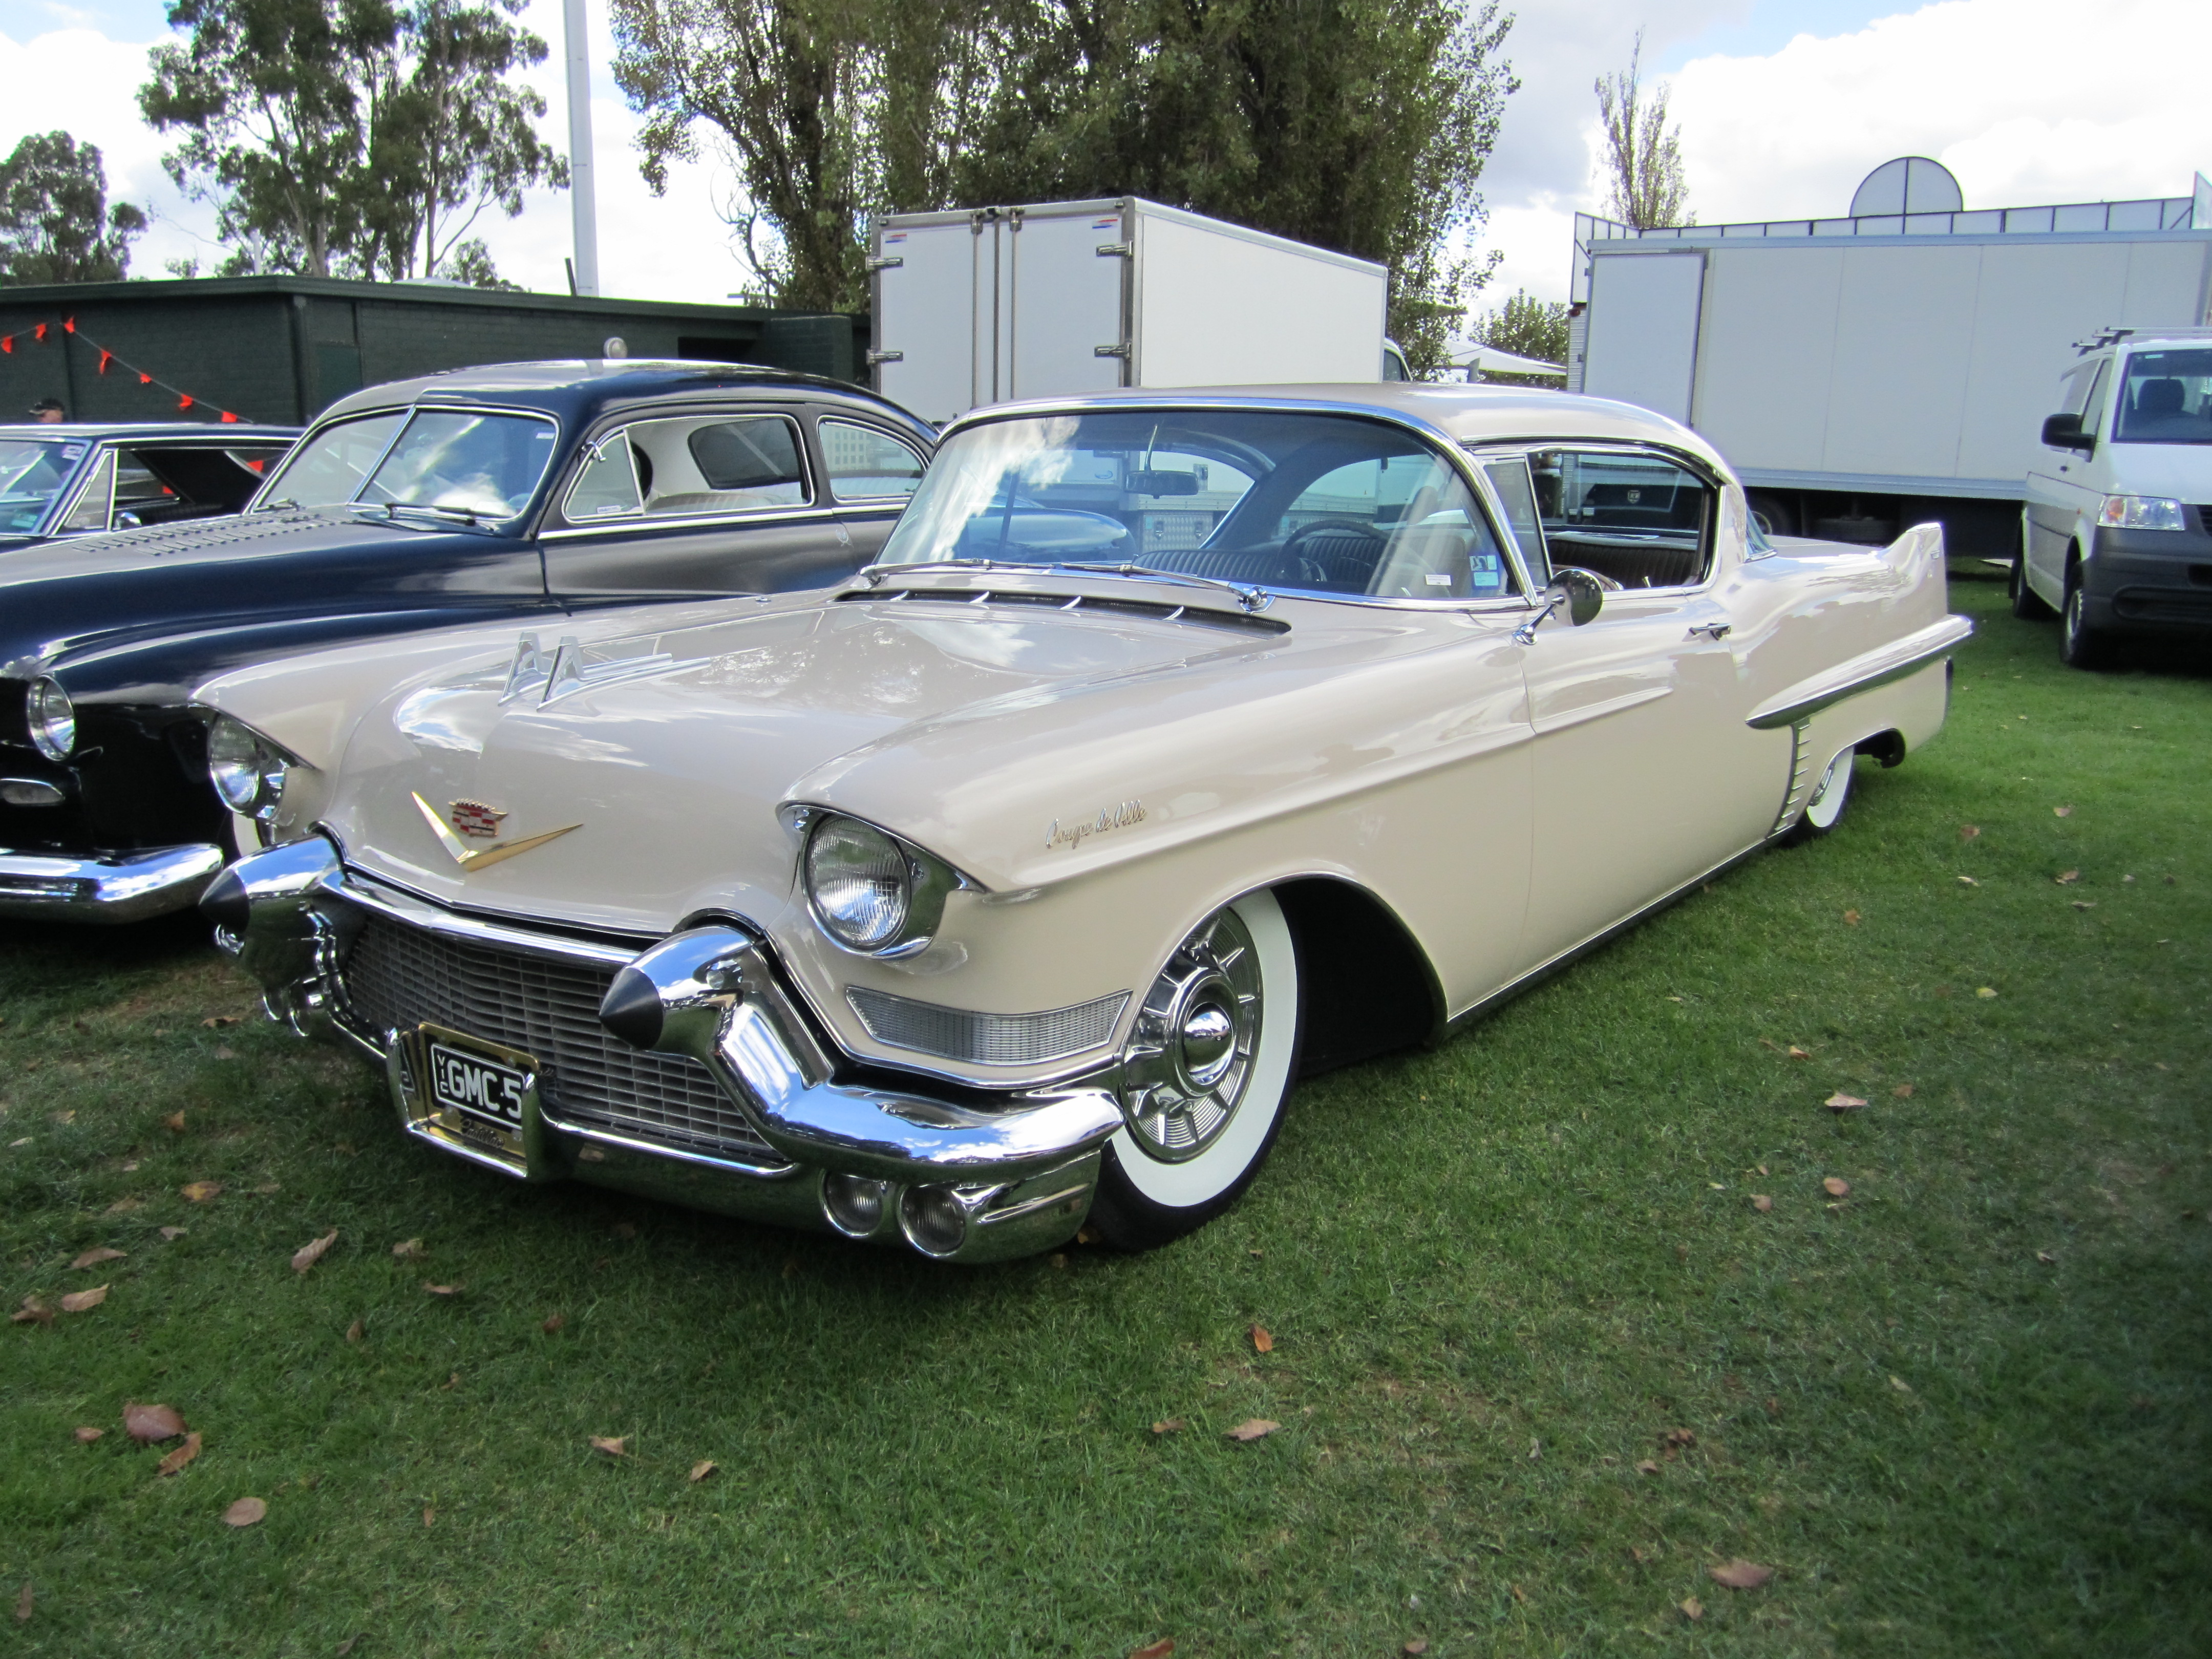 1957 Cadillac Coupe Deville (MN) - $30,000